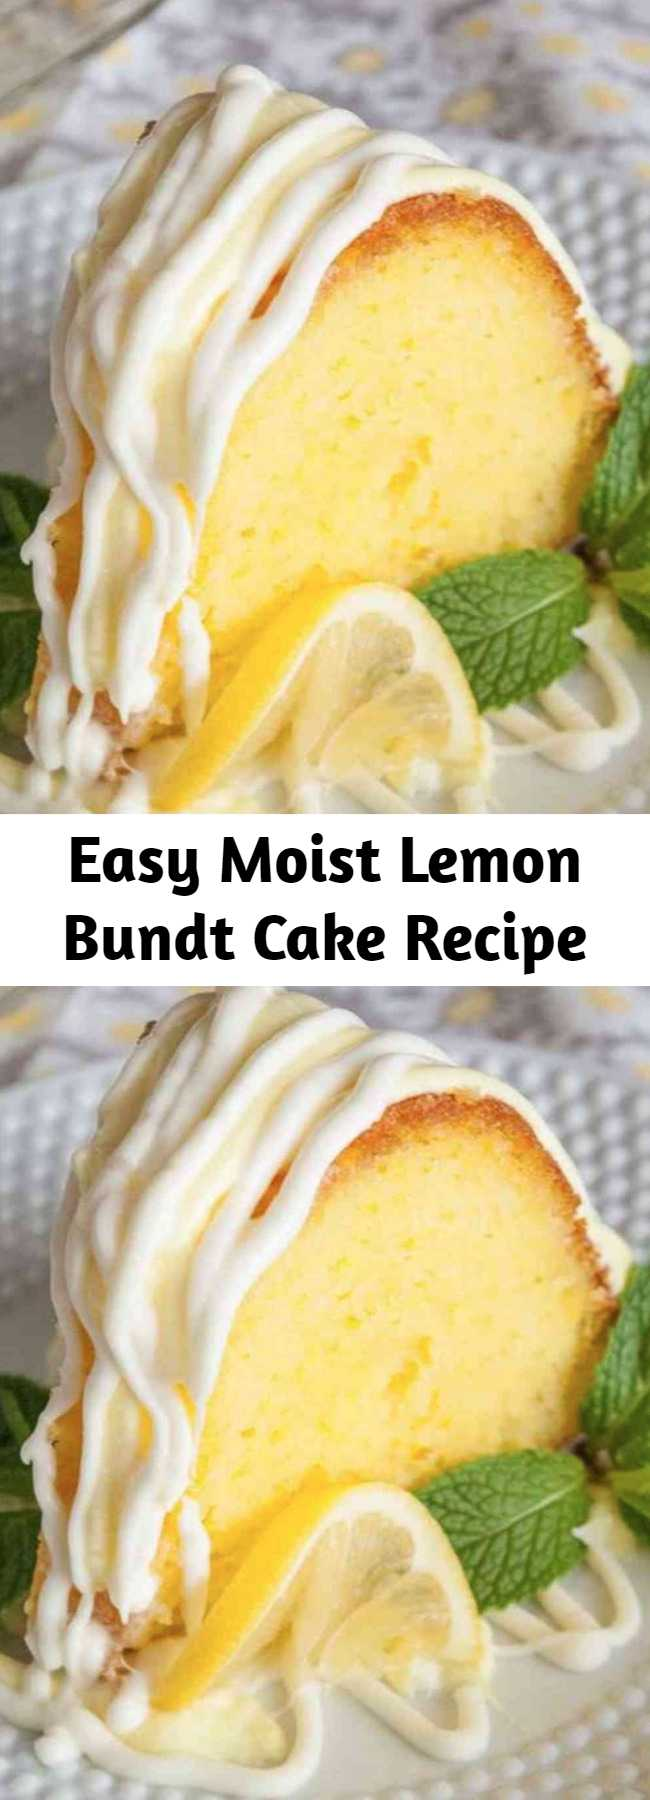 Easy Moist Lemon Bundt Cake Recipe - This easy lemon bundt cake drizzled with lemon cream cheese frosting is a fantastic nearly from scratch dessert! It's super moist and super tasty!